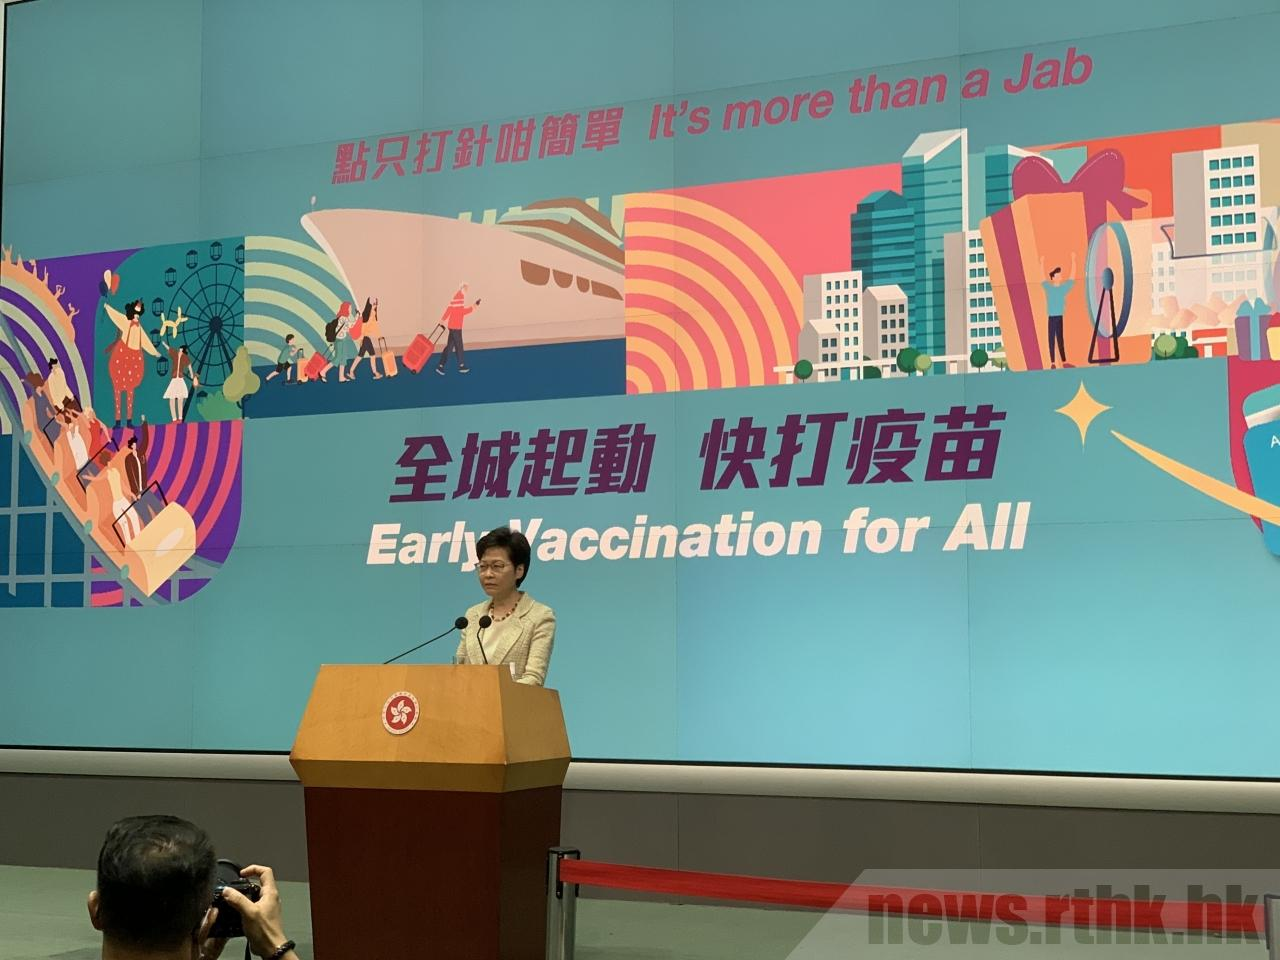 Government is not penalising unvaccinated people: CE